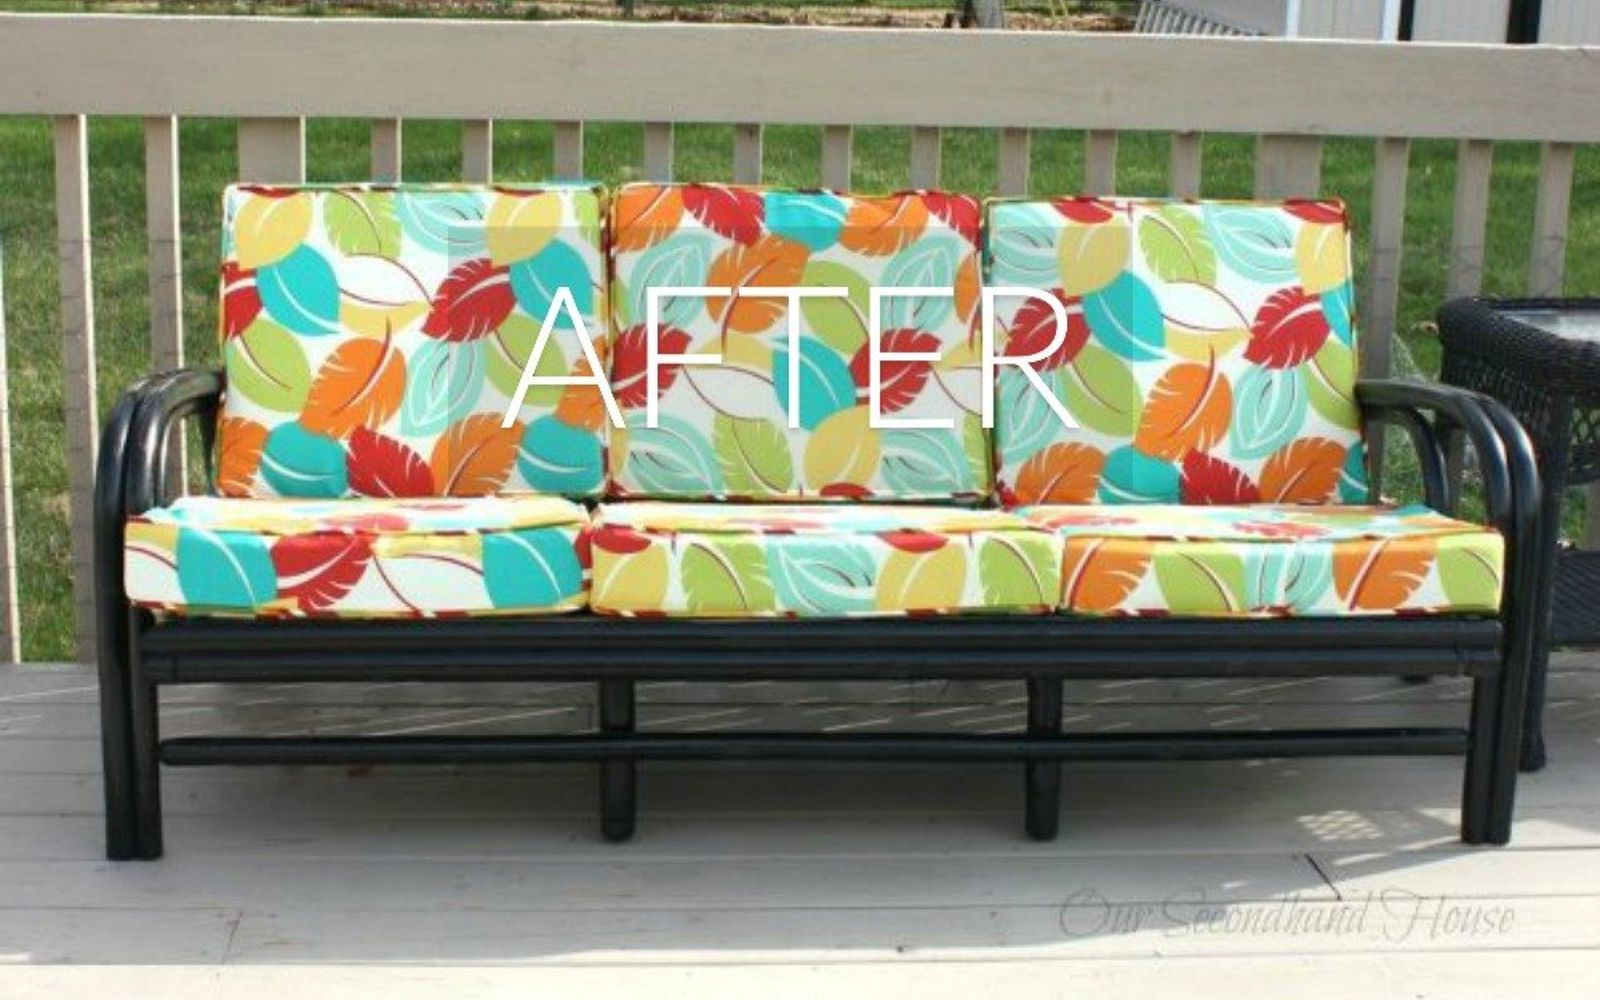 s hide your couch s wear and tear with these 9 ingenious ideas, painted furniture, After A perfect patio piece